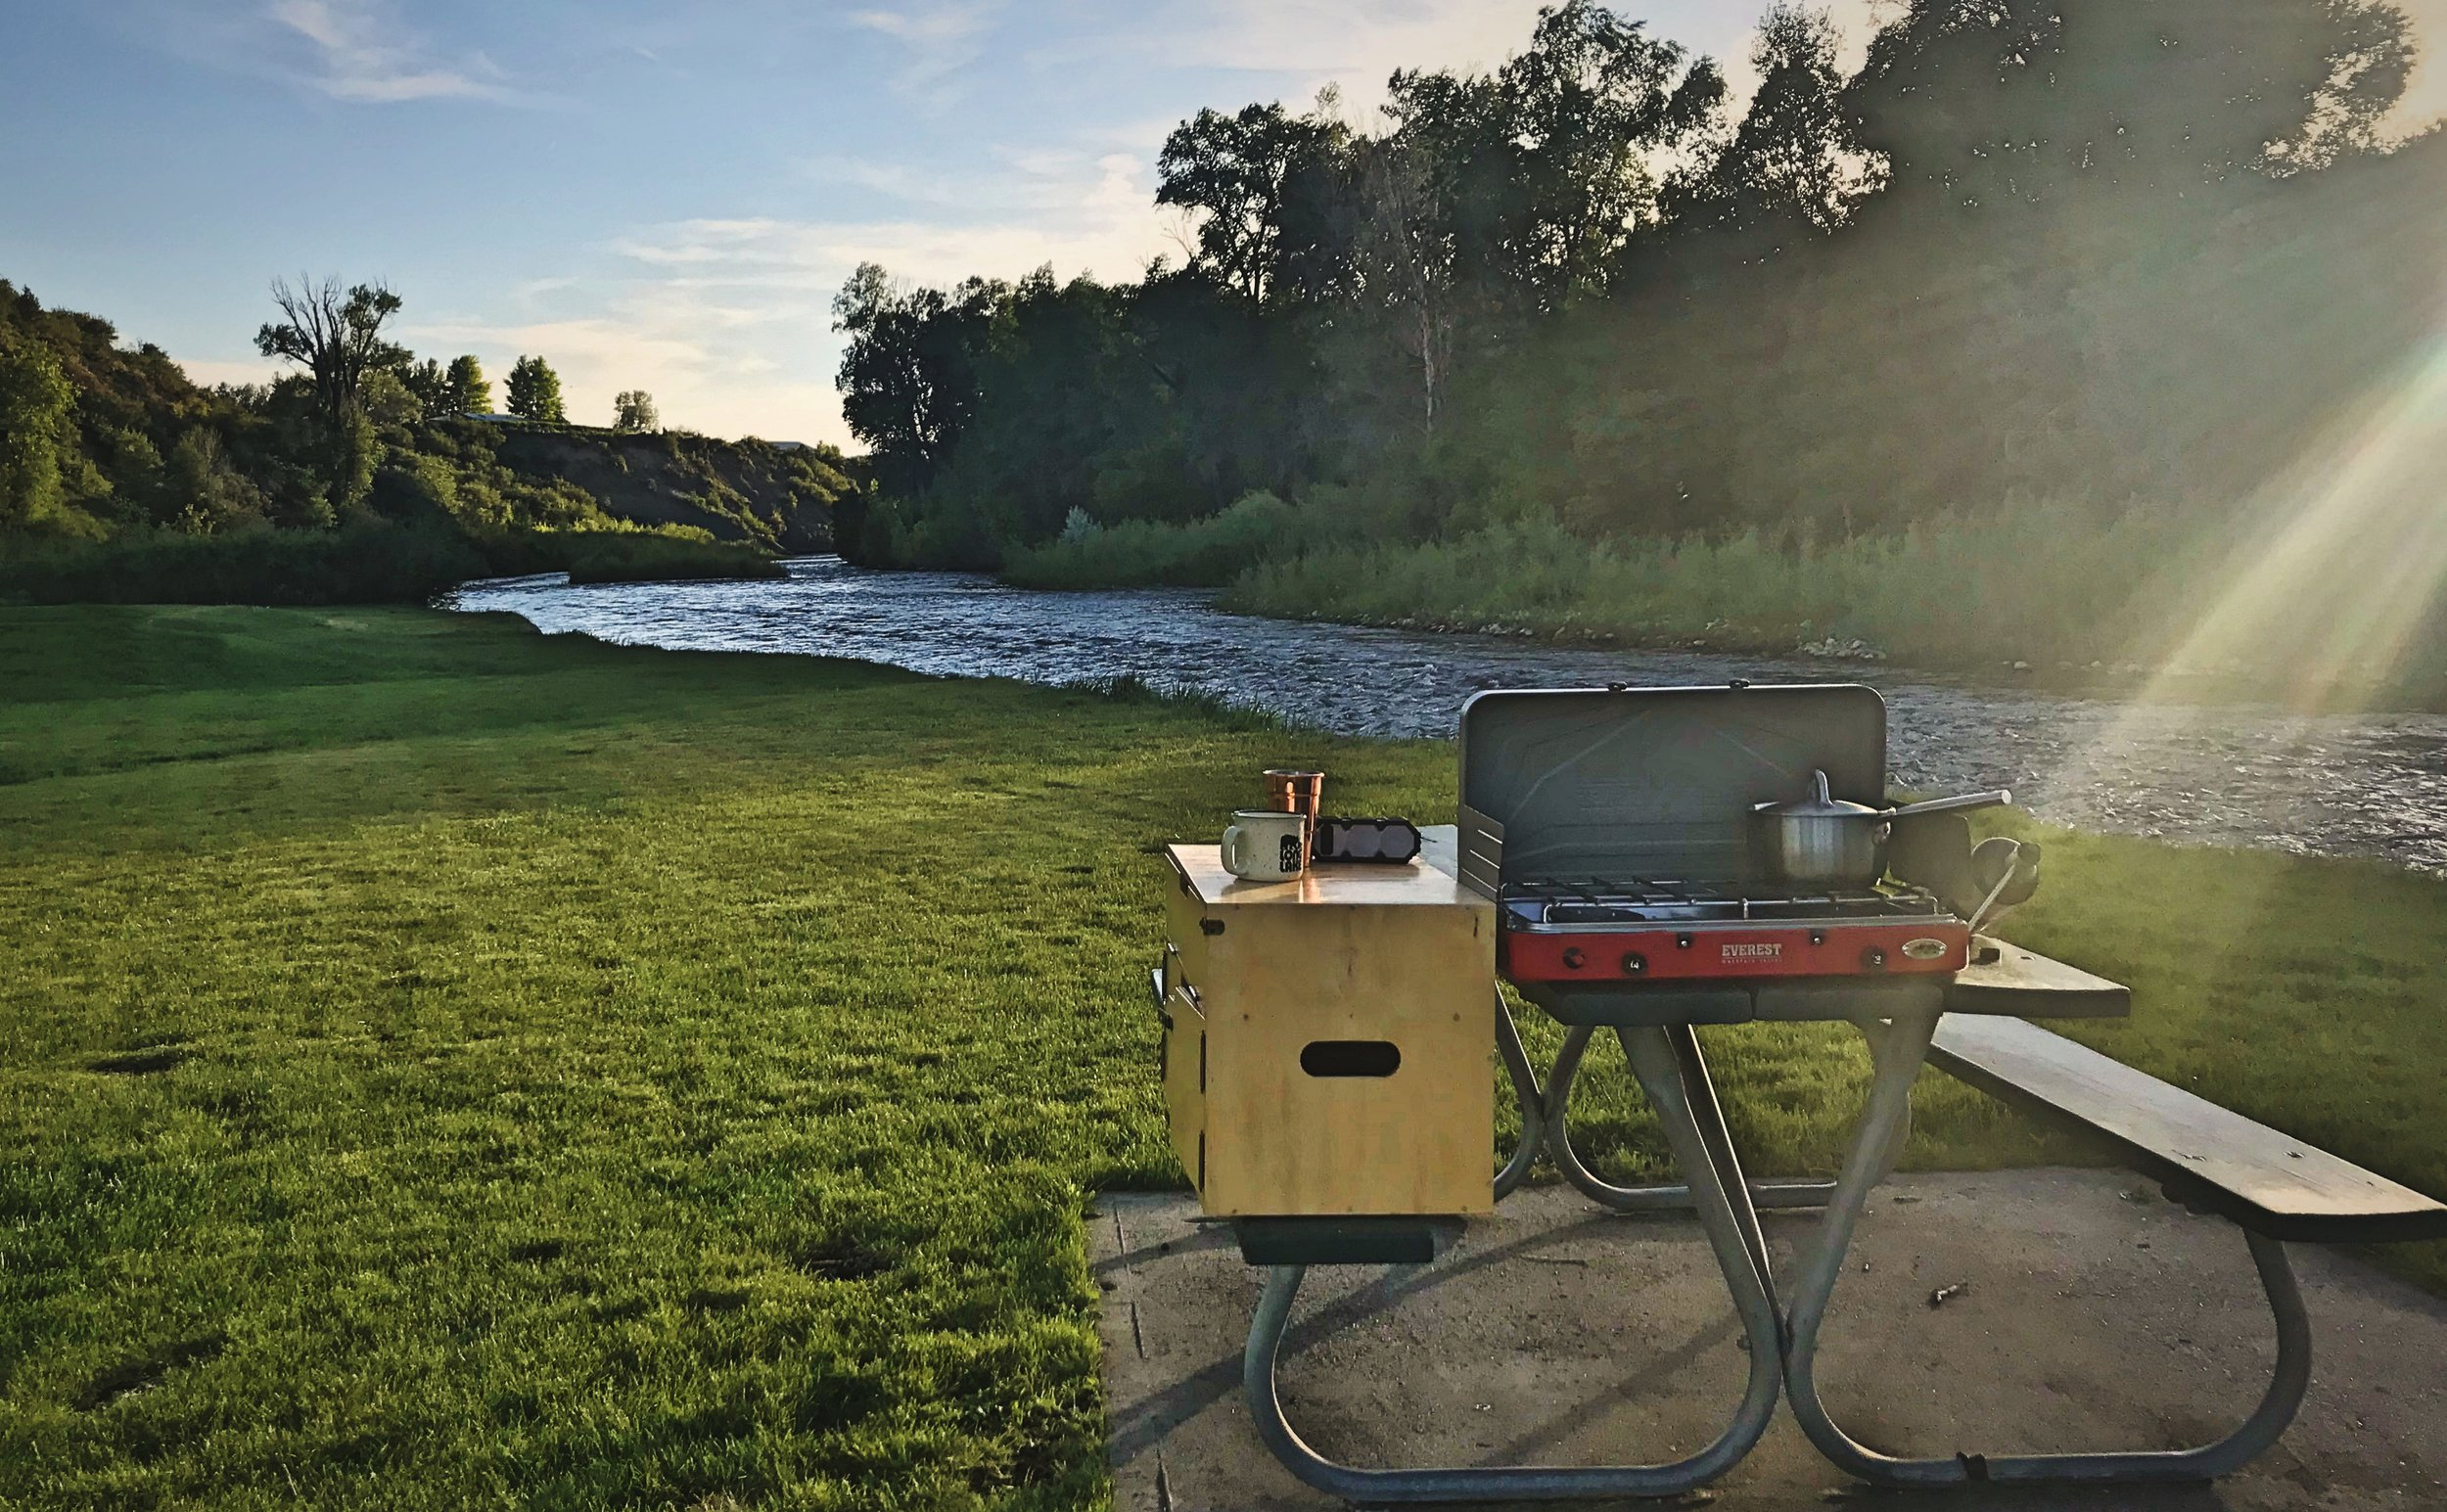 Cooking with our chuck box along the White River in Meeker, Colorado.